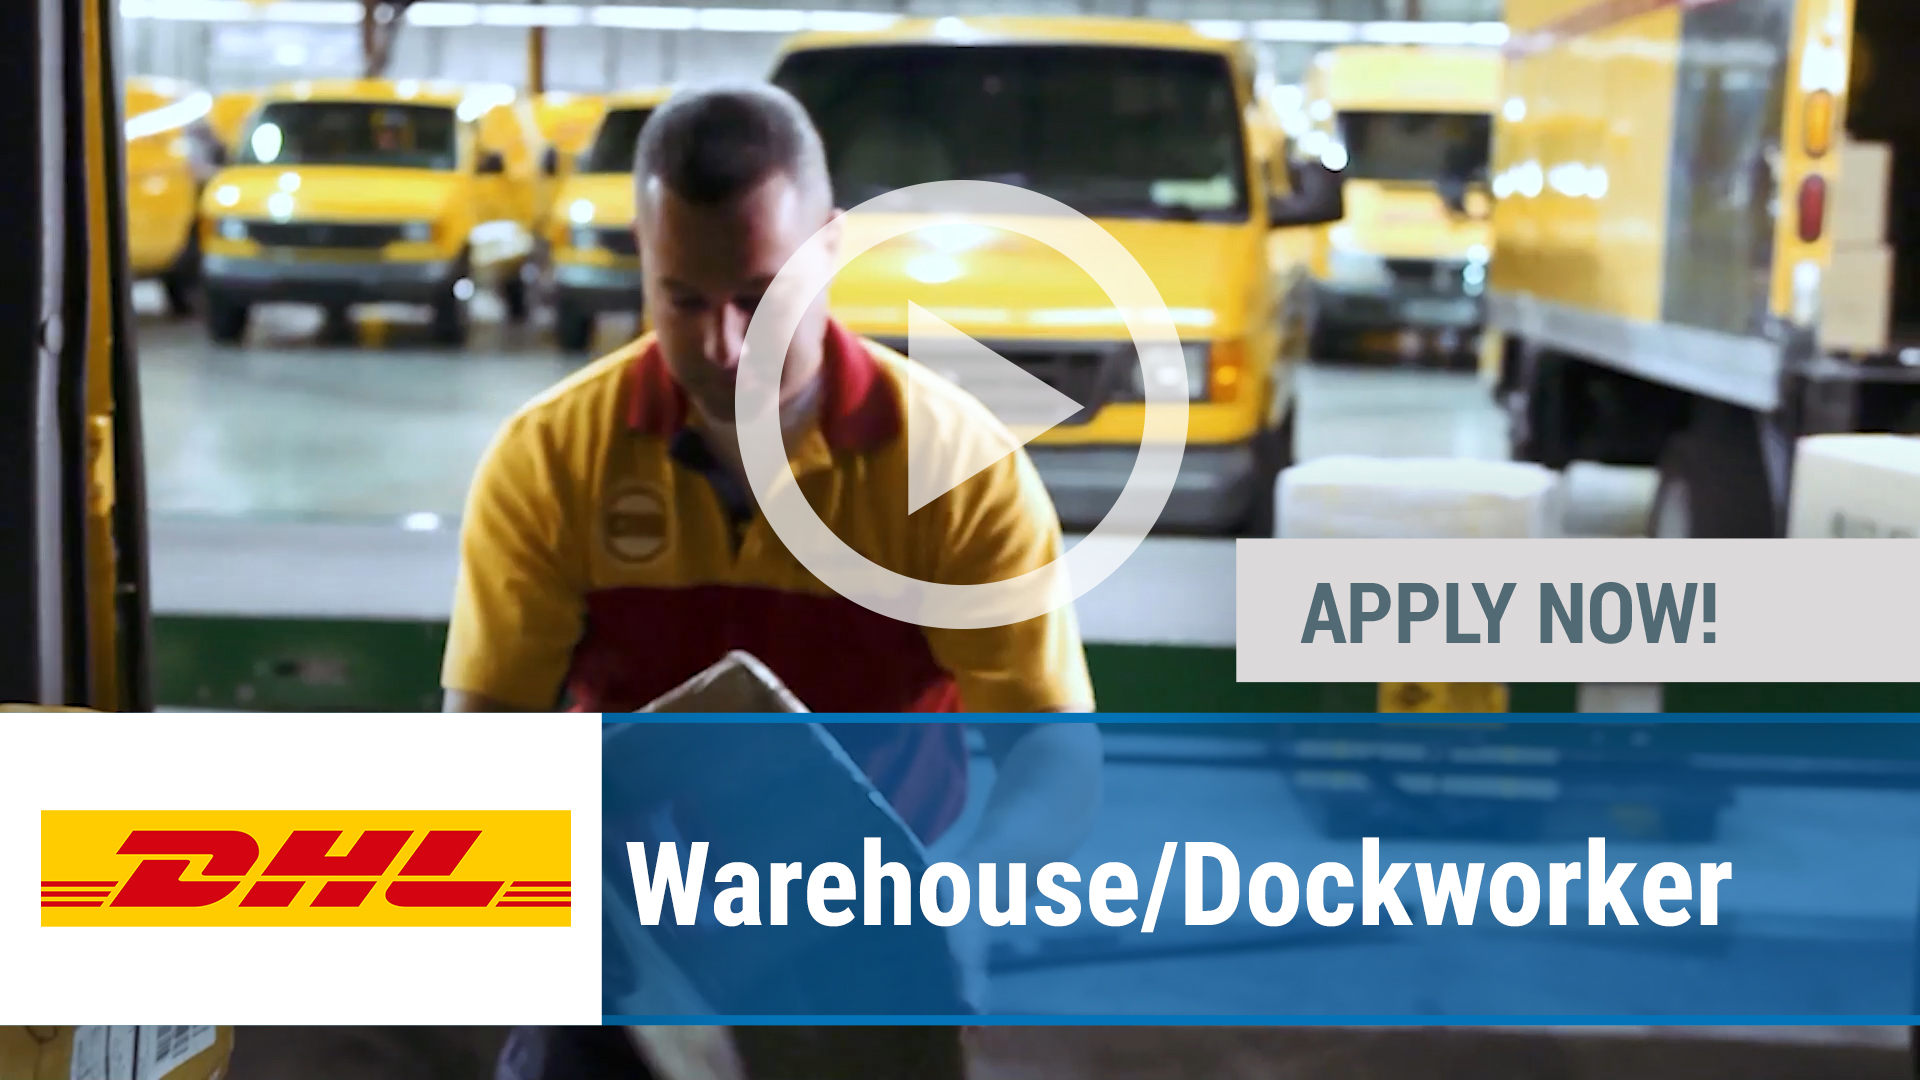 Watch our careers video for available job opening Warehouse_Dockworker in East Windsor, NJ, USA